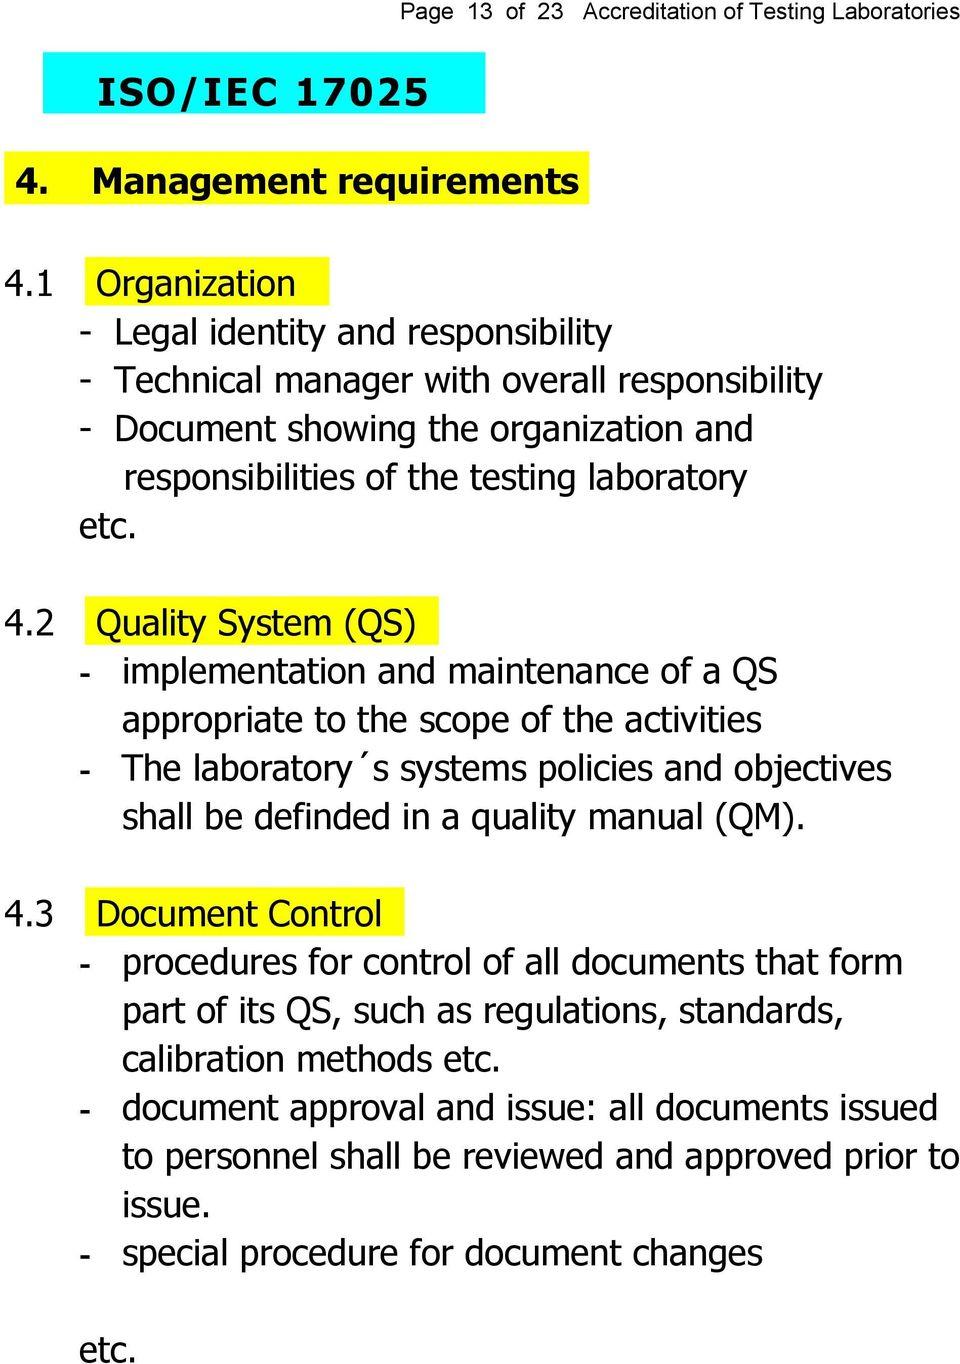 2 Quality System (QS) - implementation and maintenance of a QS appropriate to the scope of the activities - The laboratory s systems policies and objectives shall be definded in a quality